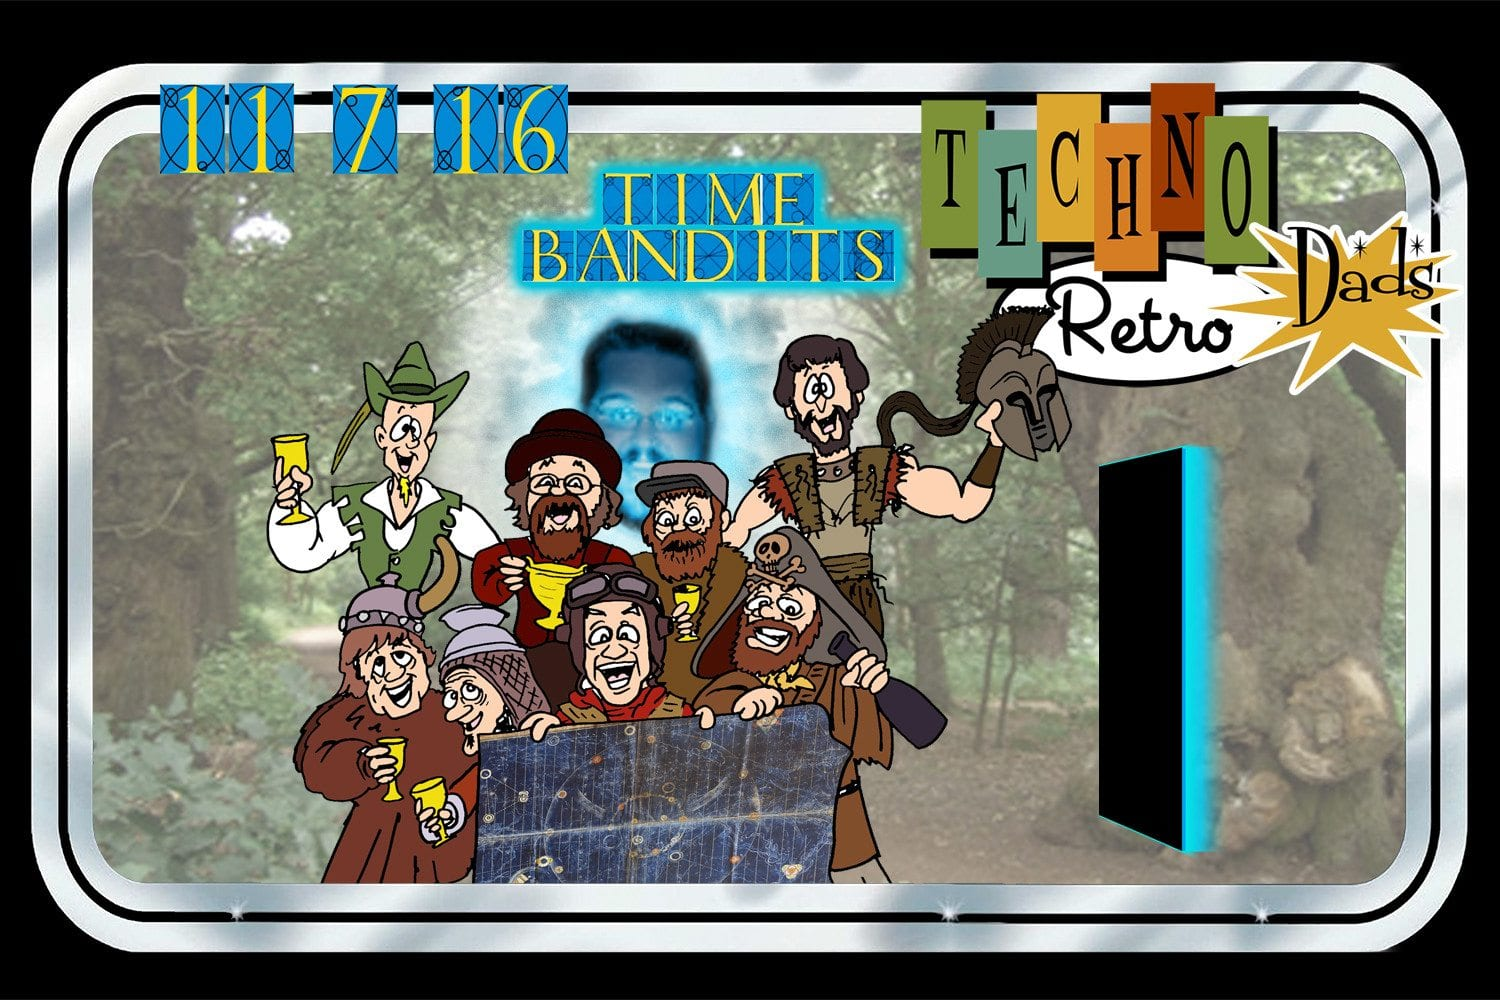 TechnoRetro Dads Time Bandits